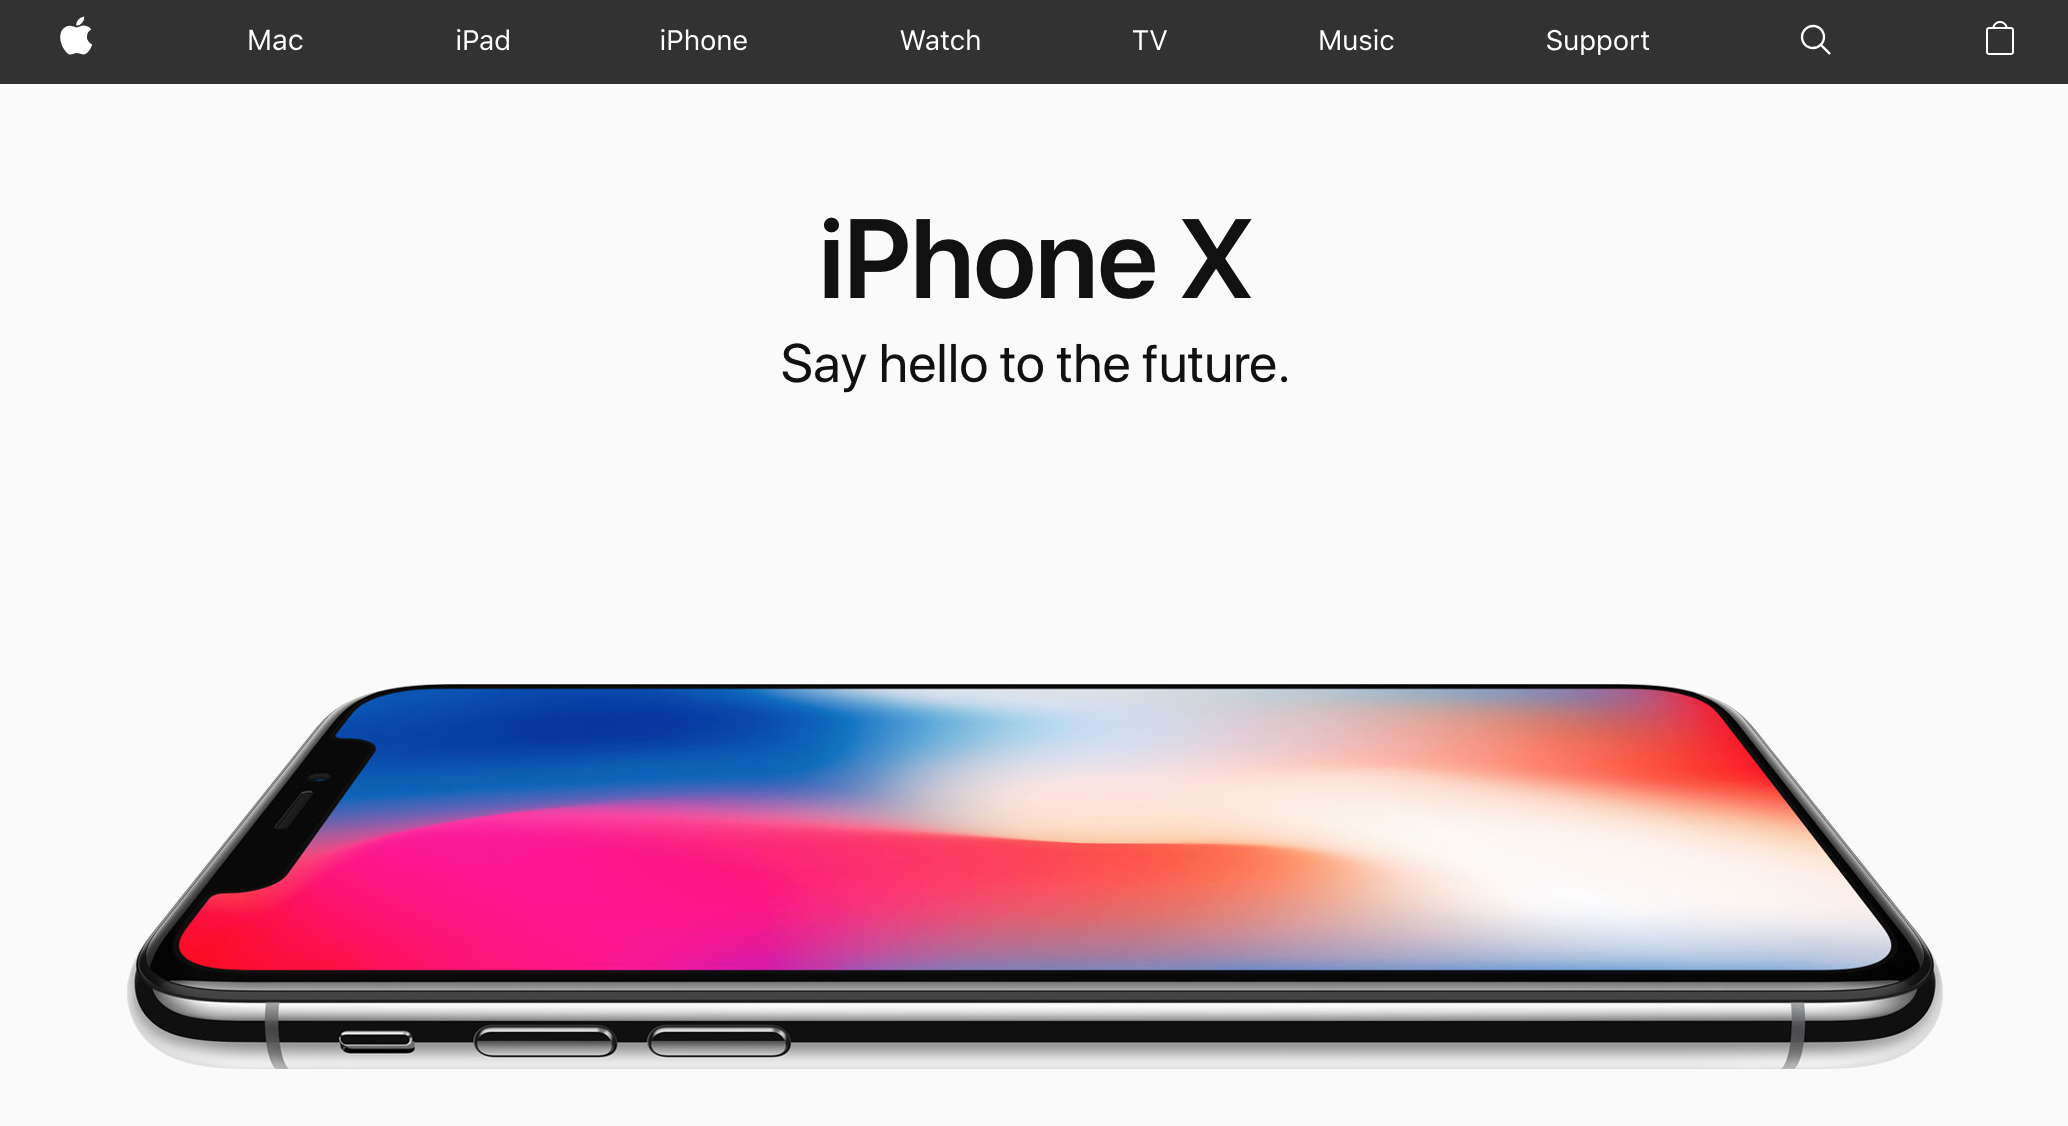 Apple homepage showing iPhone X (2017)